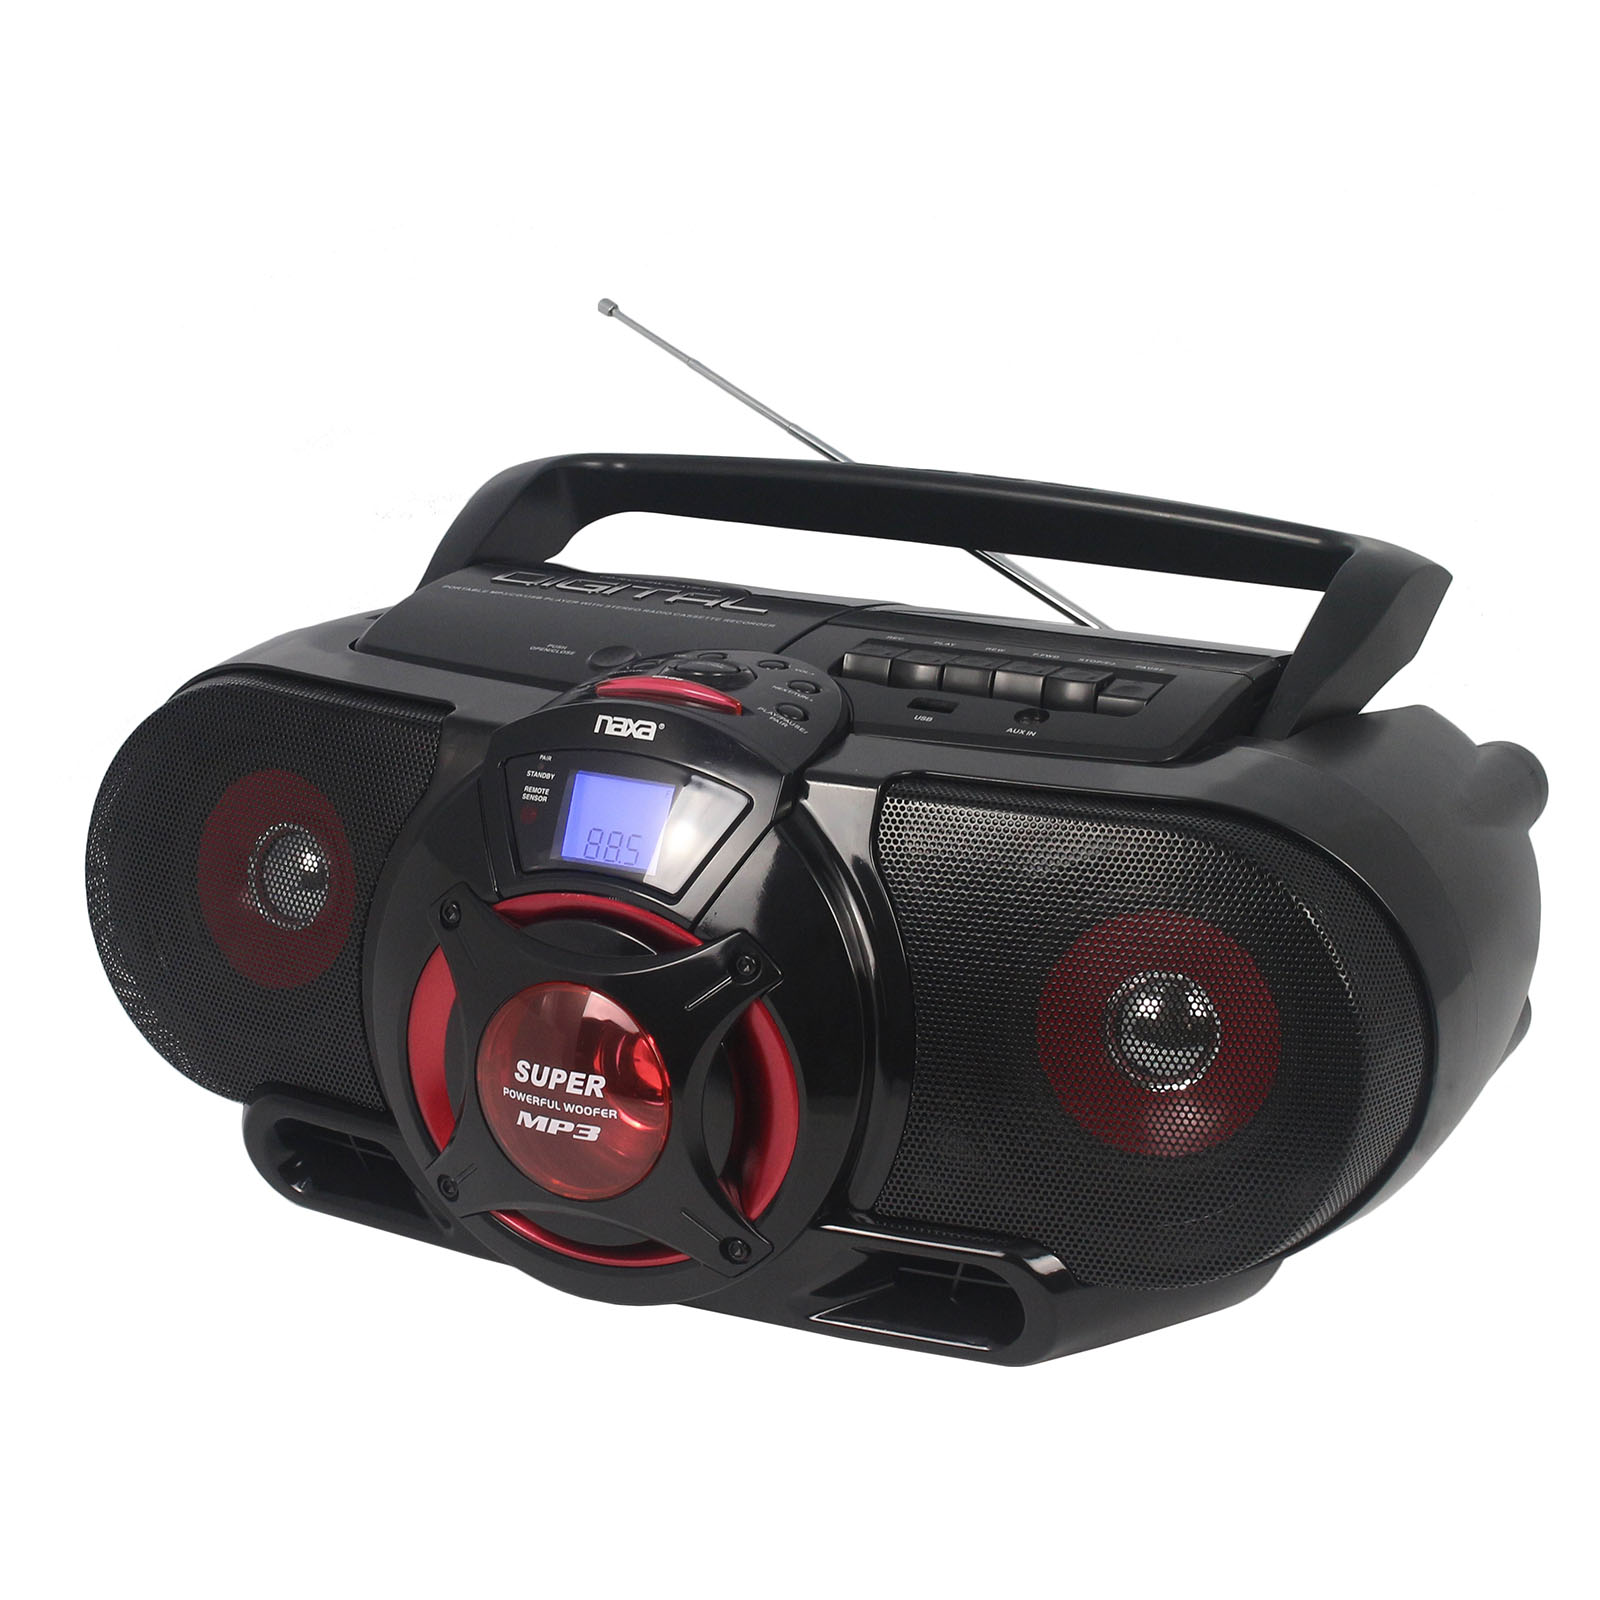 BT MP3/CD AM/FM Stereo Radio Cassette Player/Recorder with Subwoofer and USB Input